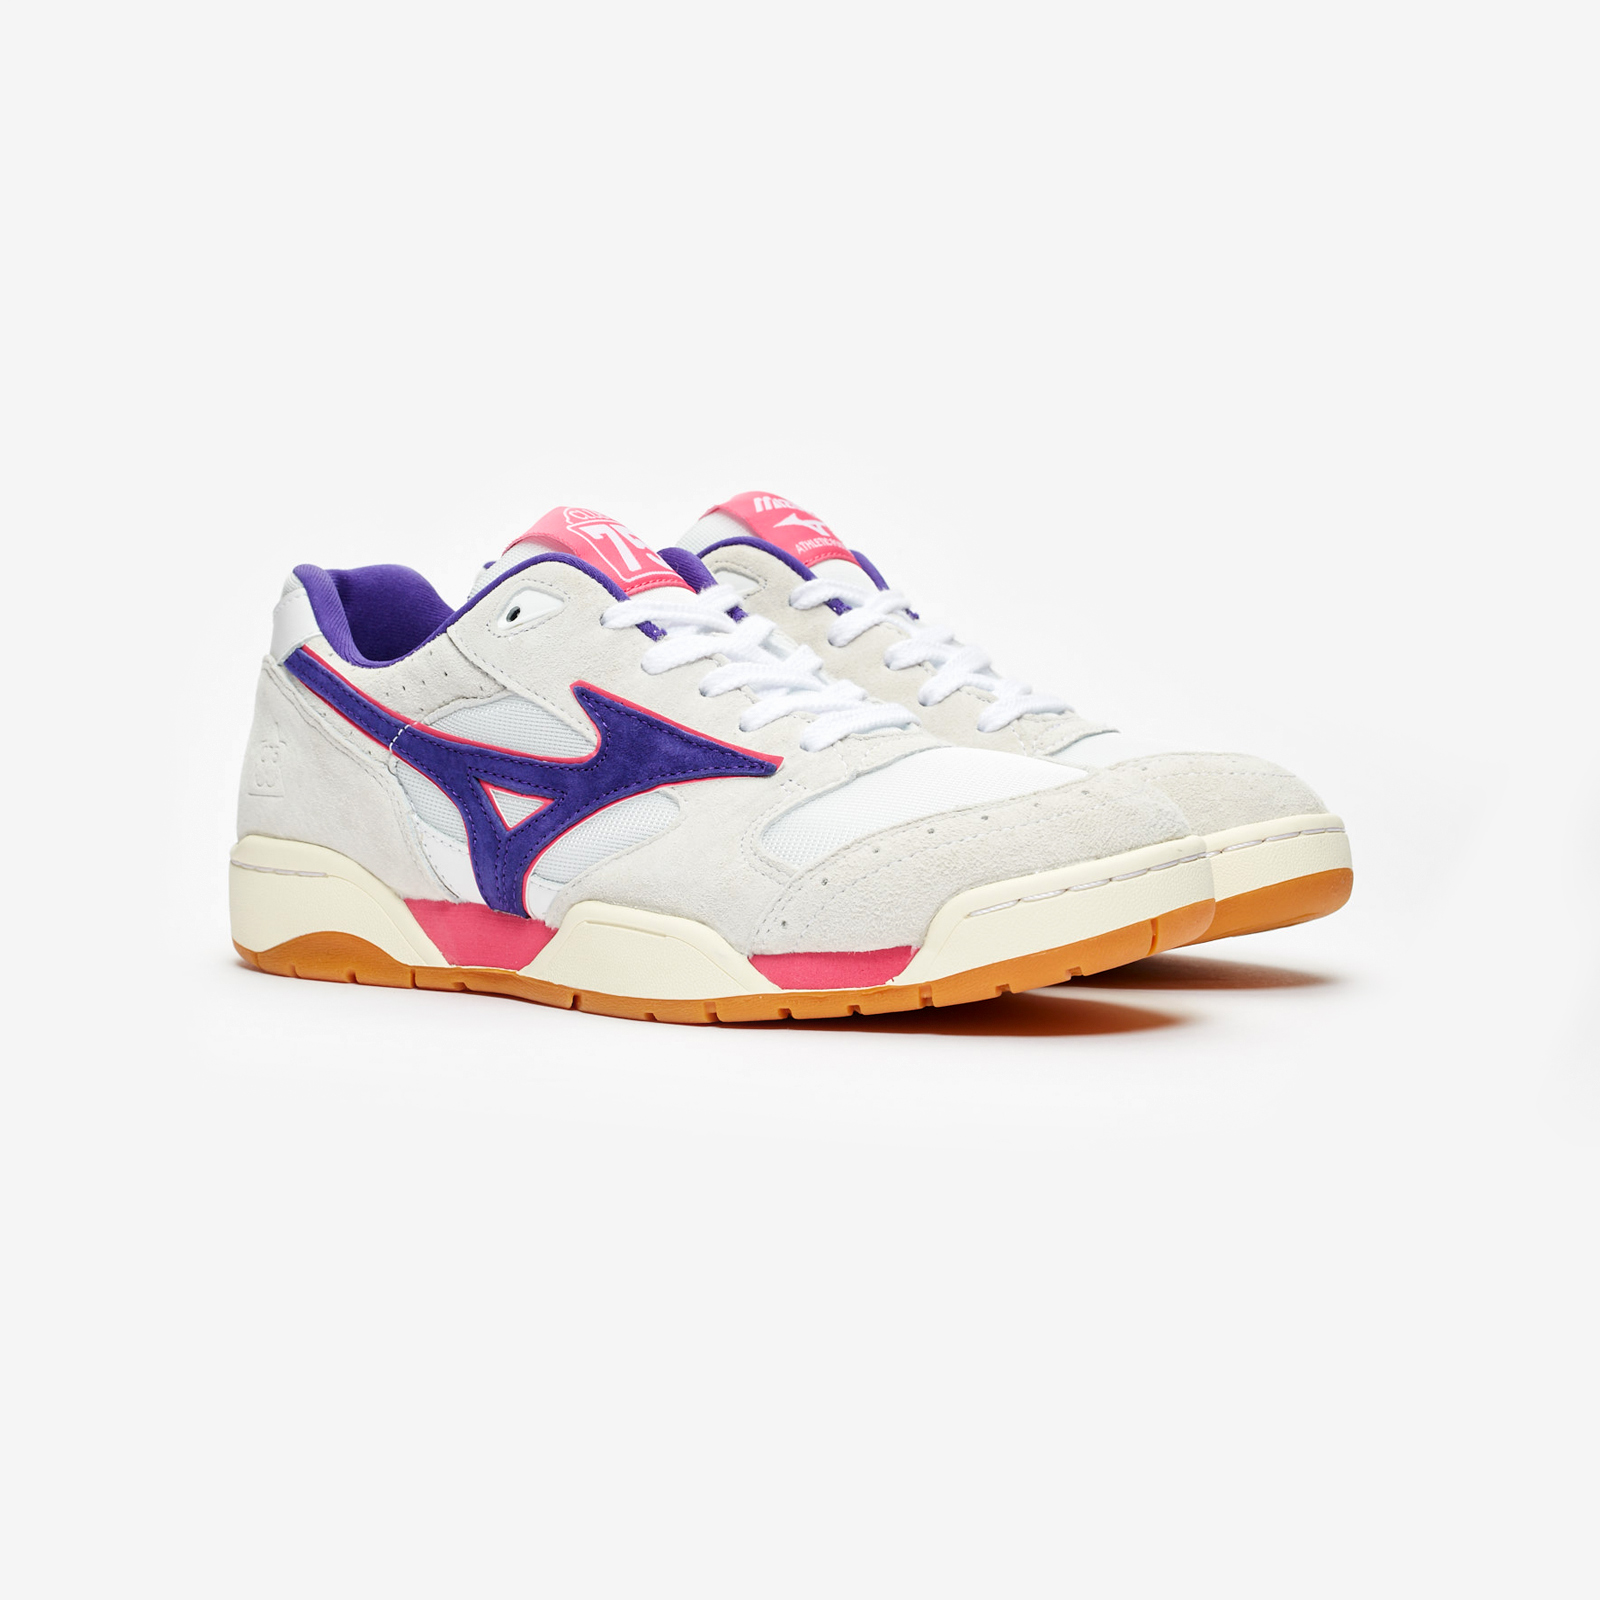 3f3cab53b27b6 Mizuno Court Select Club 75 - D1gd182801 - Sneakersnstuff